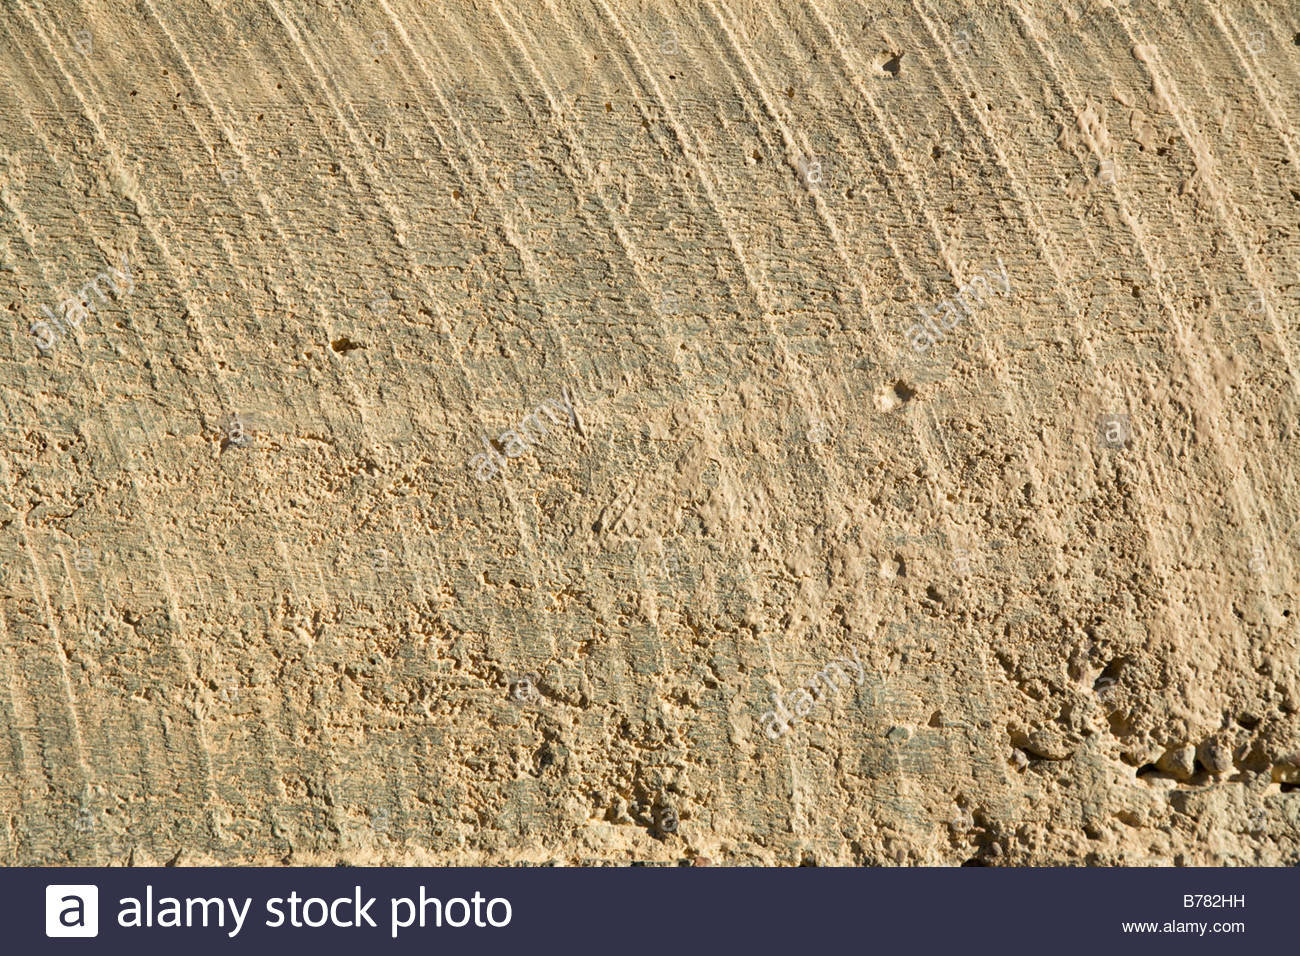 Texture rough finished concrete trowel marks grainy gray color - Stock Image